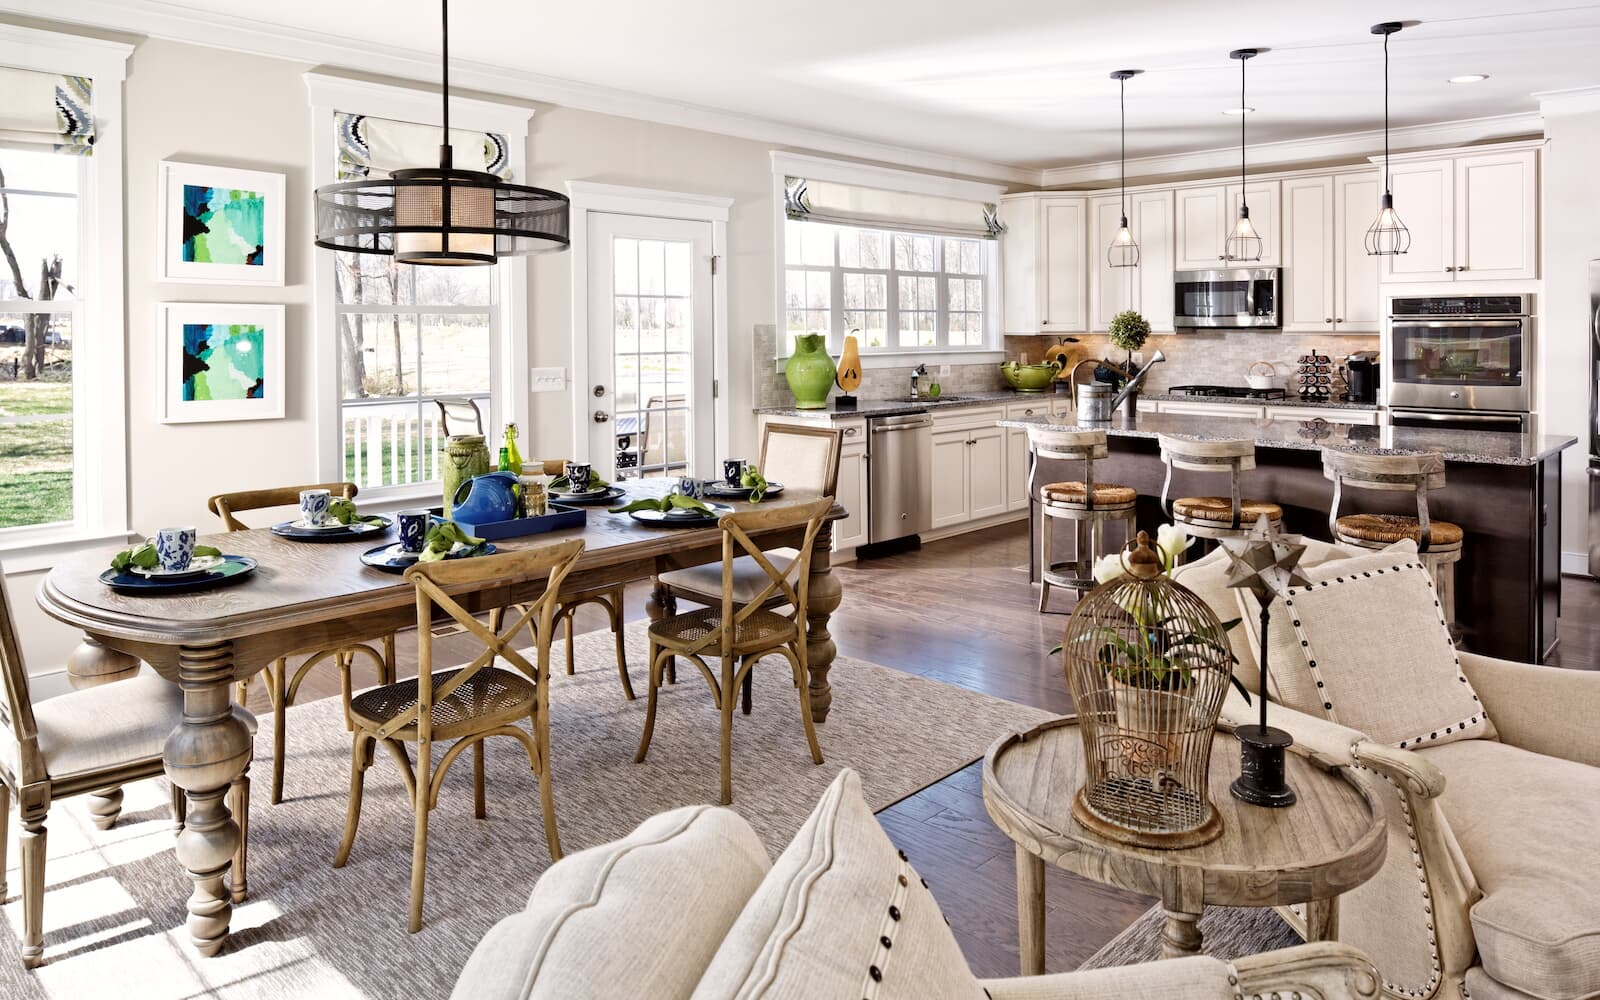 BecknerII-dining-room-single-family-home-potomac-shores-va-potomac-shores-brookfield-residential